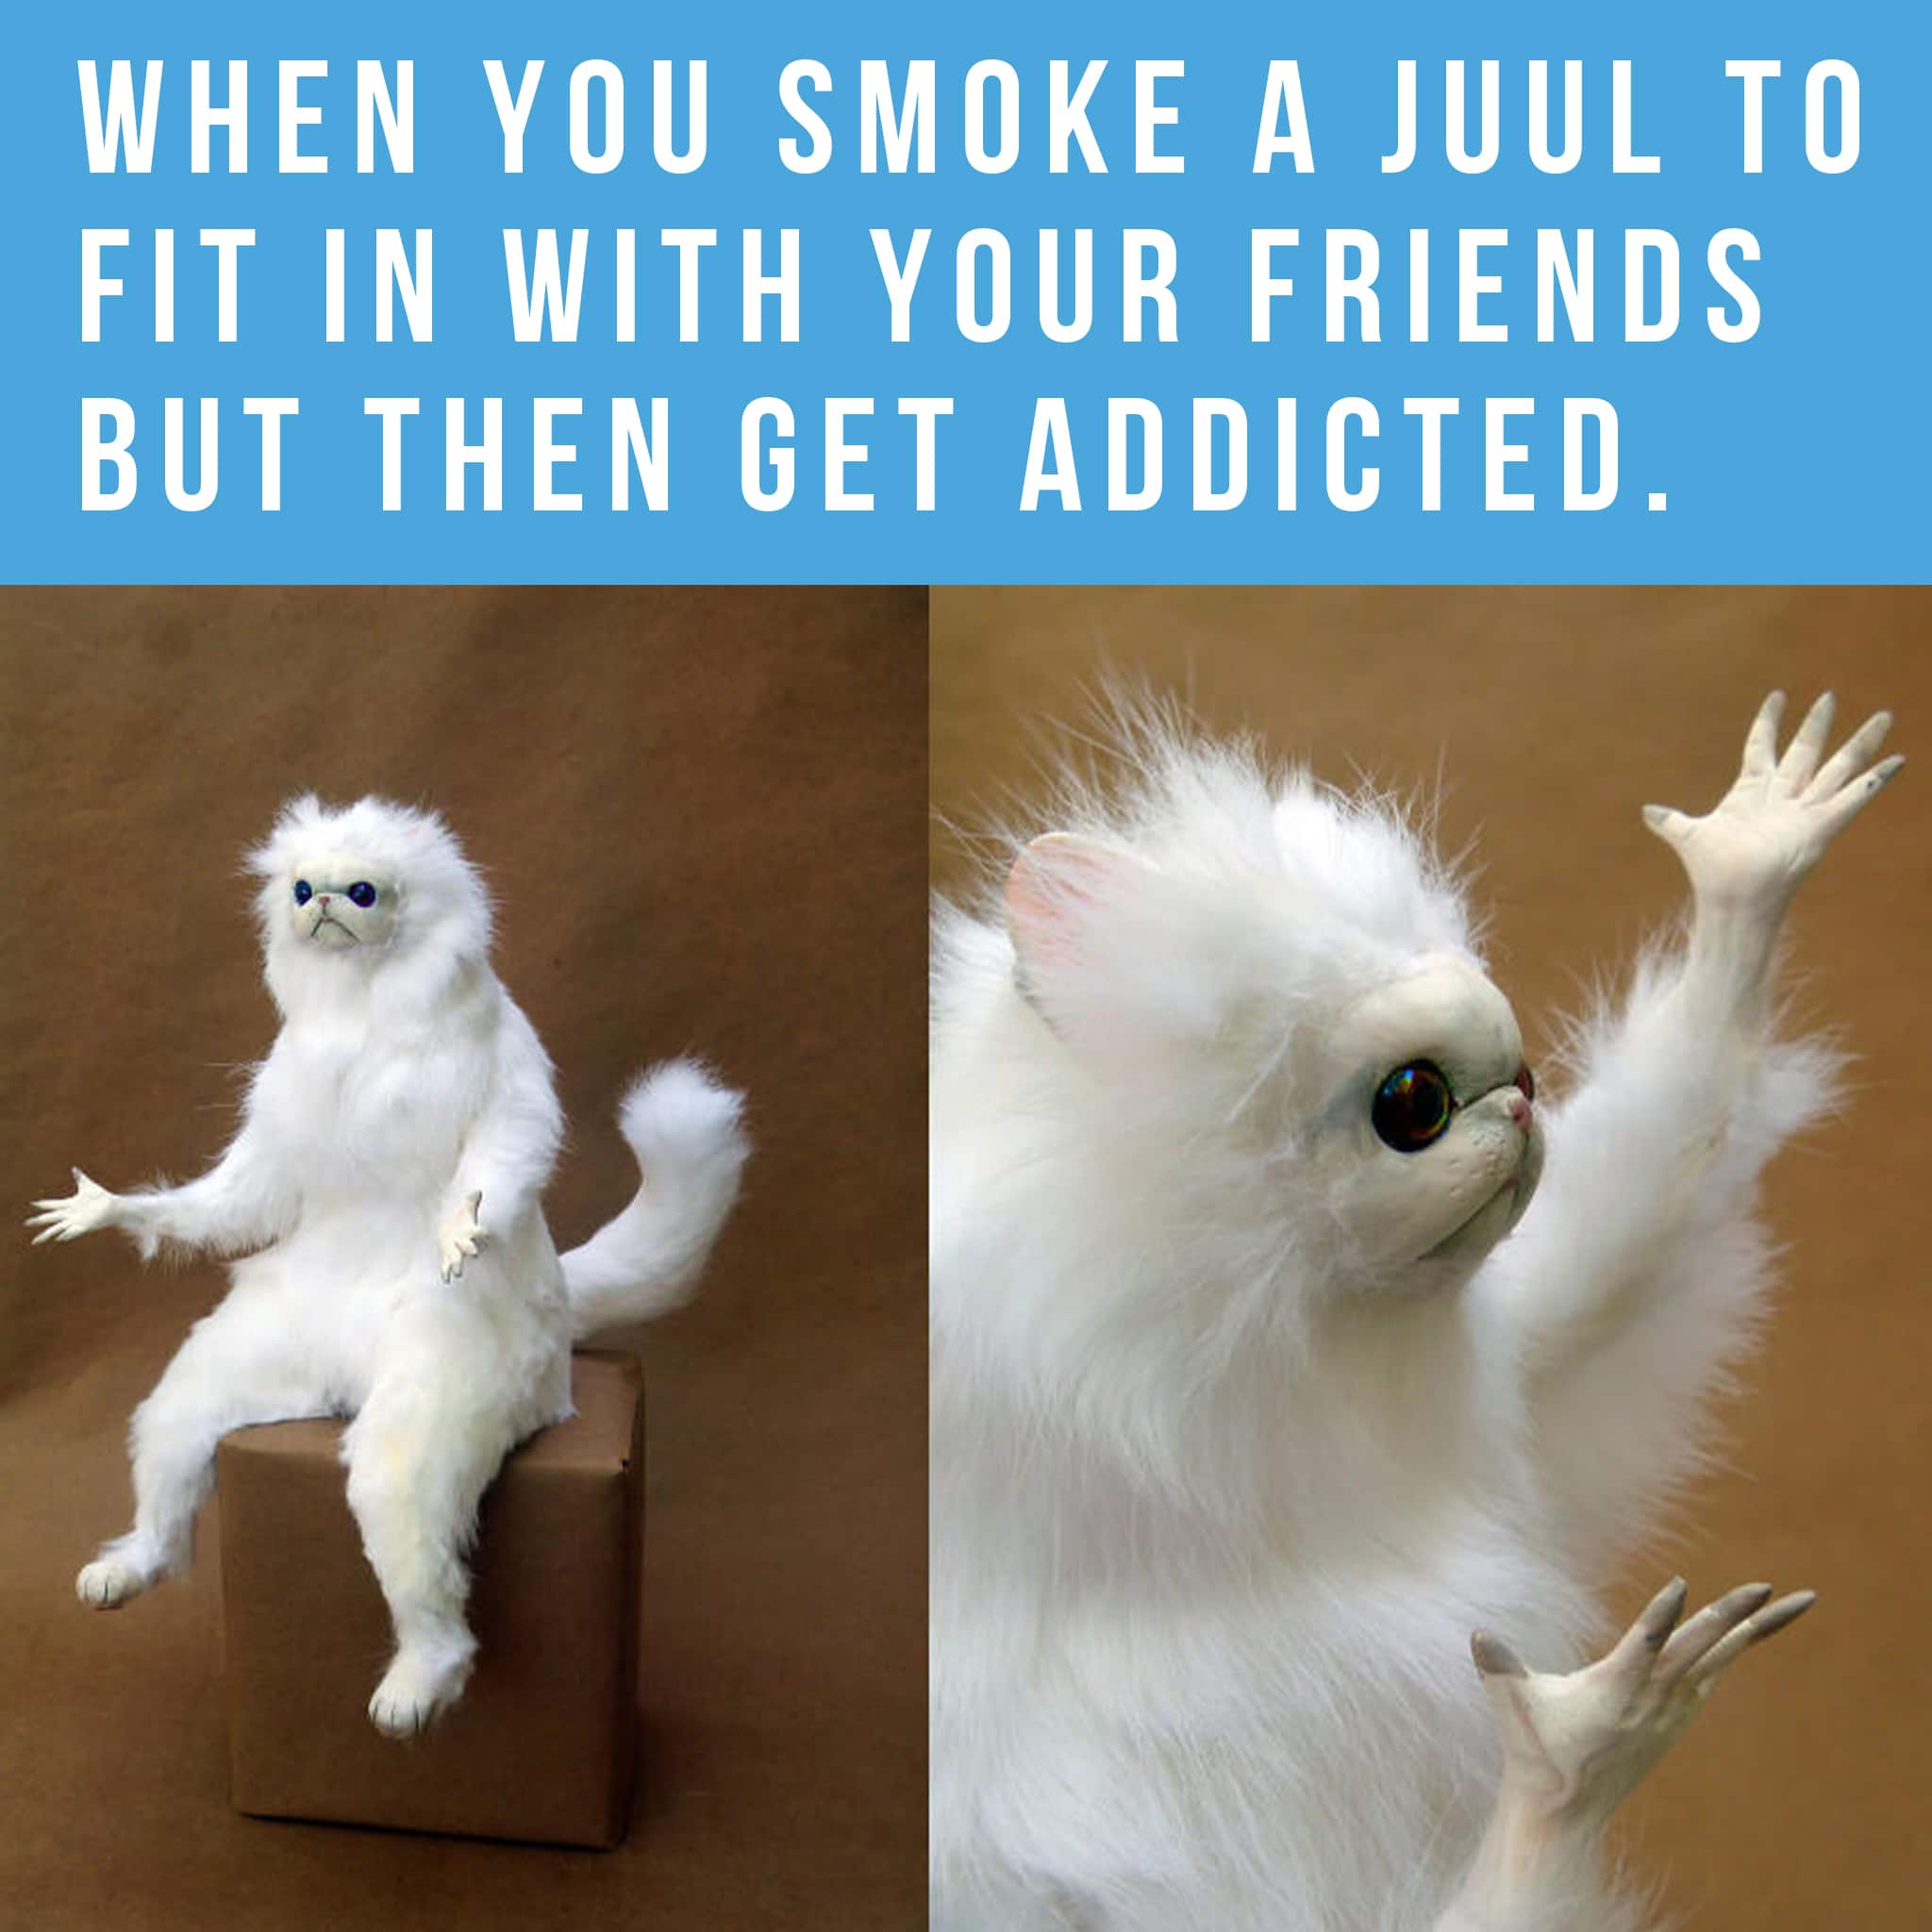 Meme format. Persian cat room guardian meme, persian cat with look of frustration and confusion. When you smoke a juul to fit in with your friends but then you get addicted.